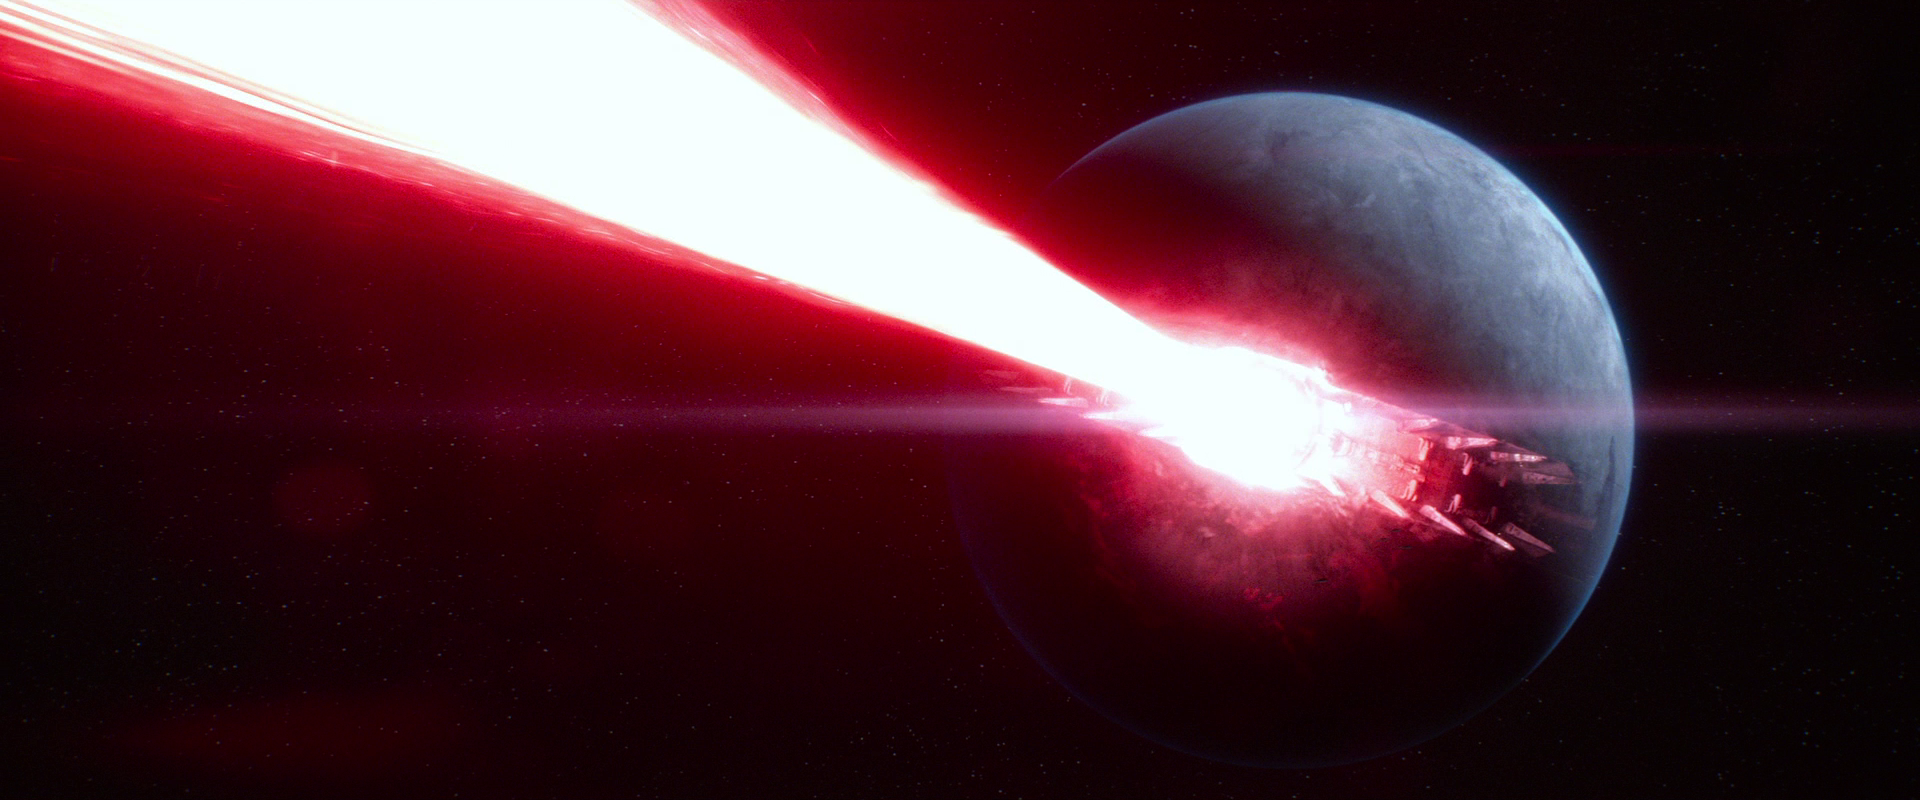 star wars 7 planet killer and death